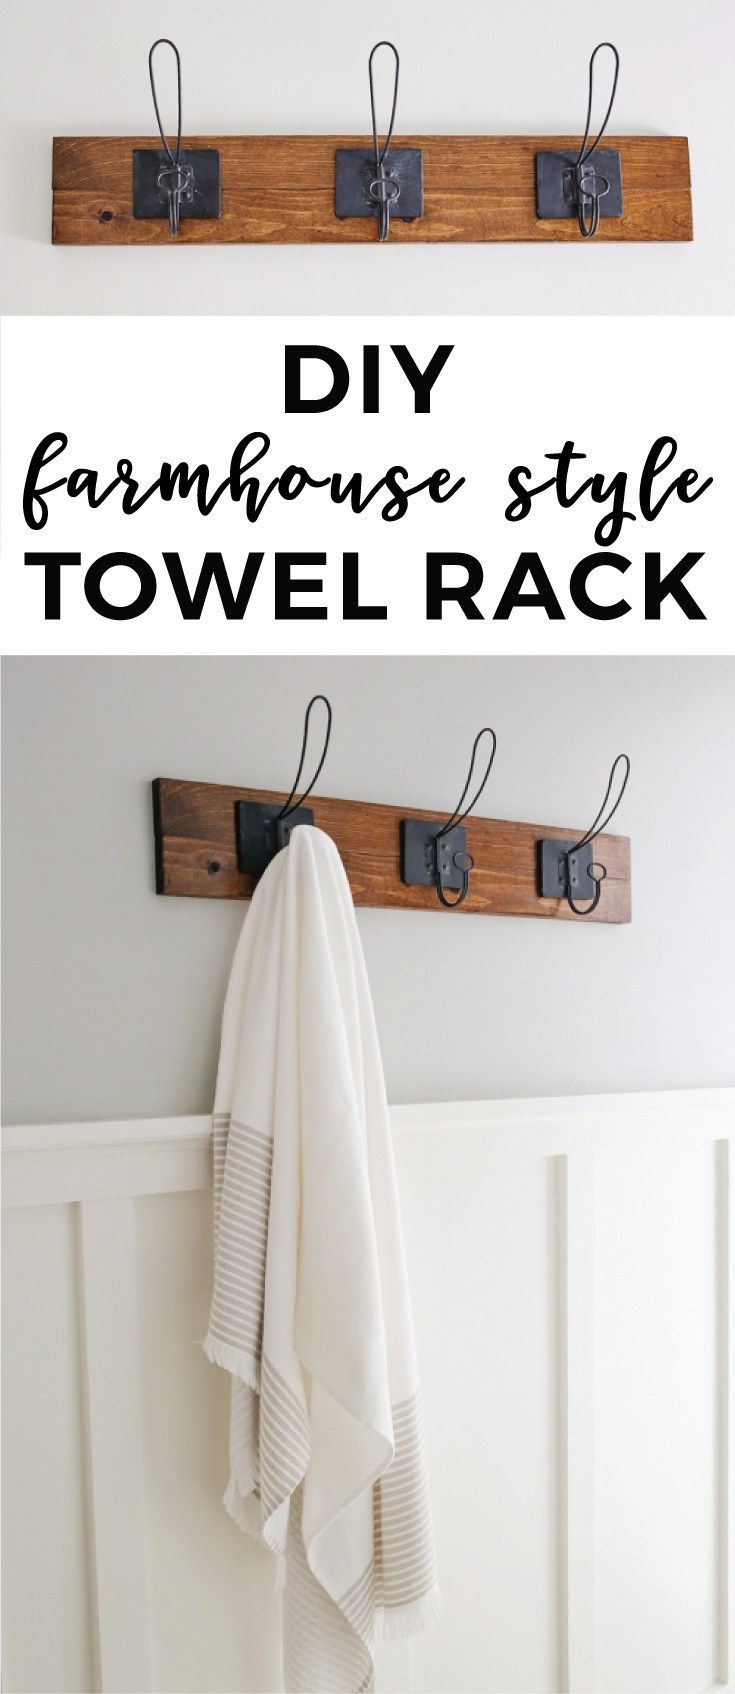 Bathroom Towel Rack Ideas.Farmhouse Style Diy Towel Rack Bathroom Towel Storage